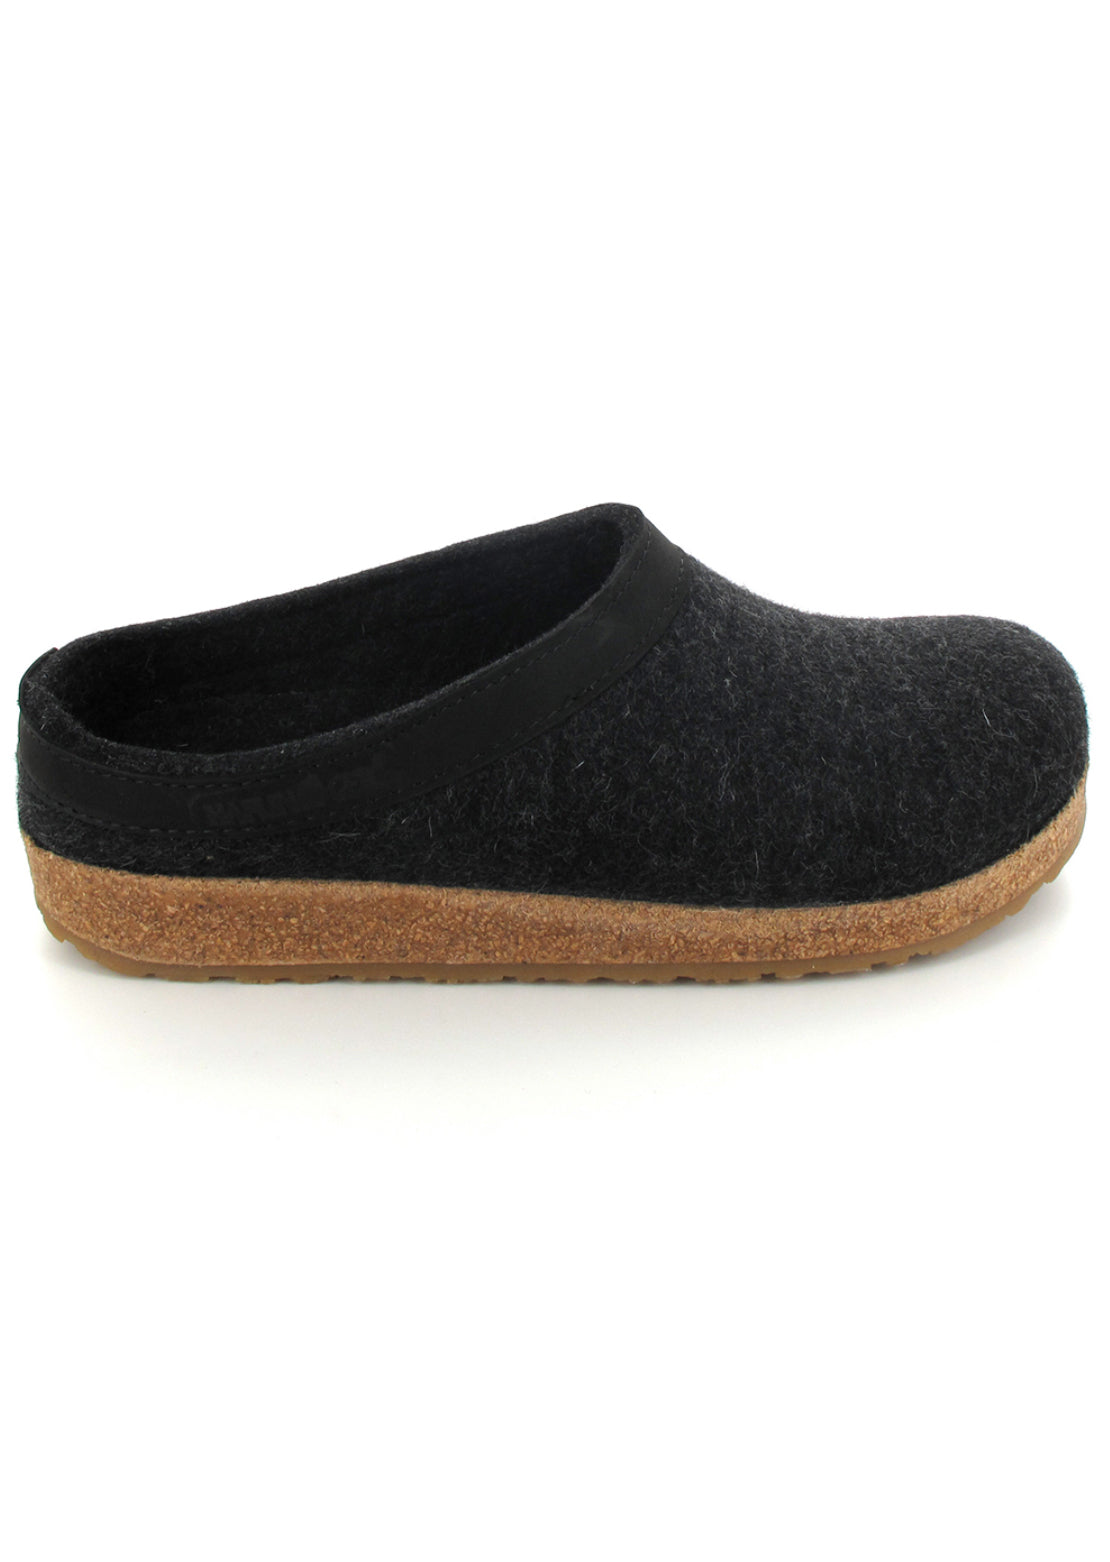 Haflinger Women's Torben Slippers Charcoal